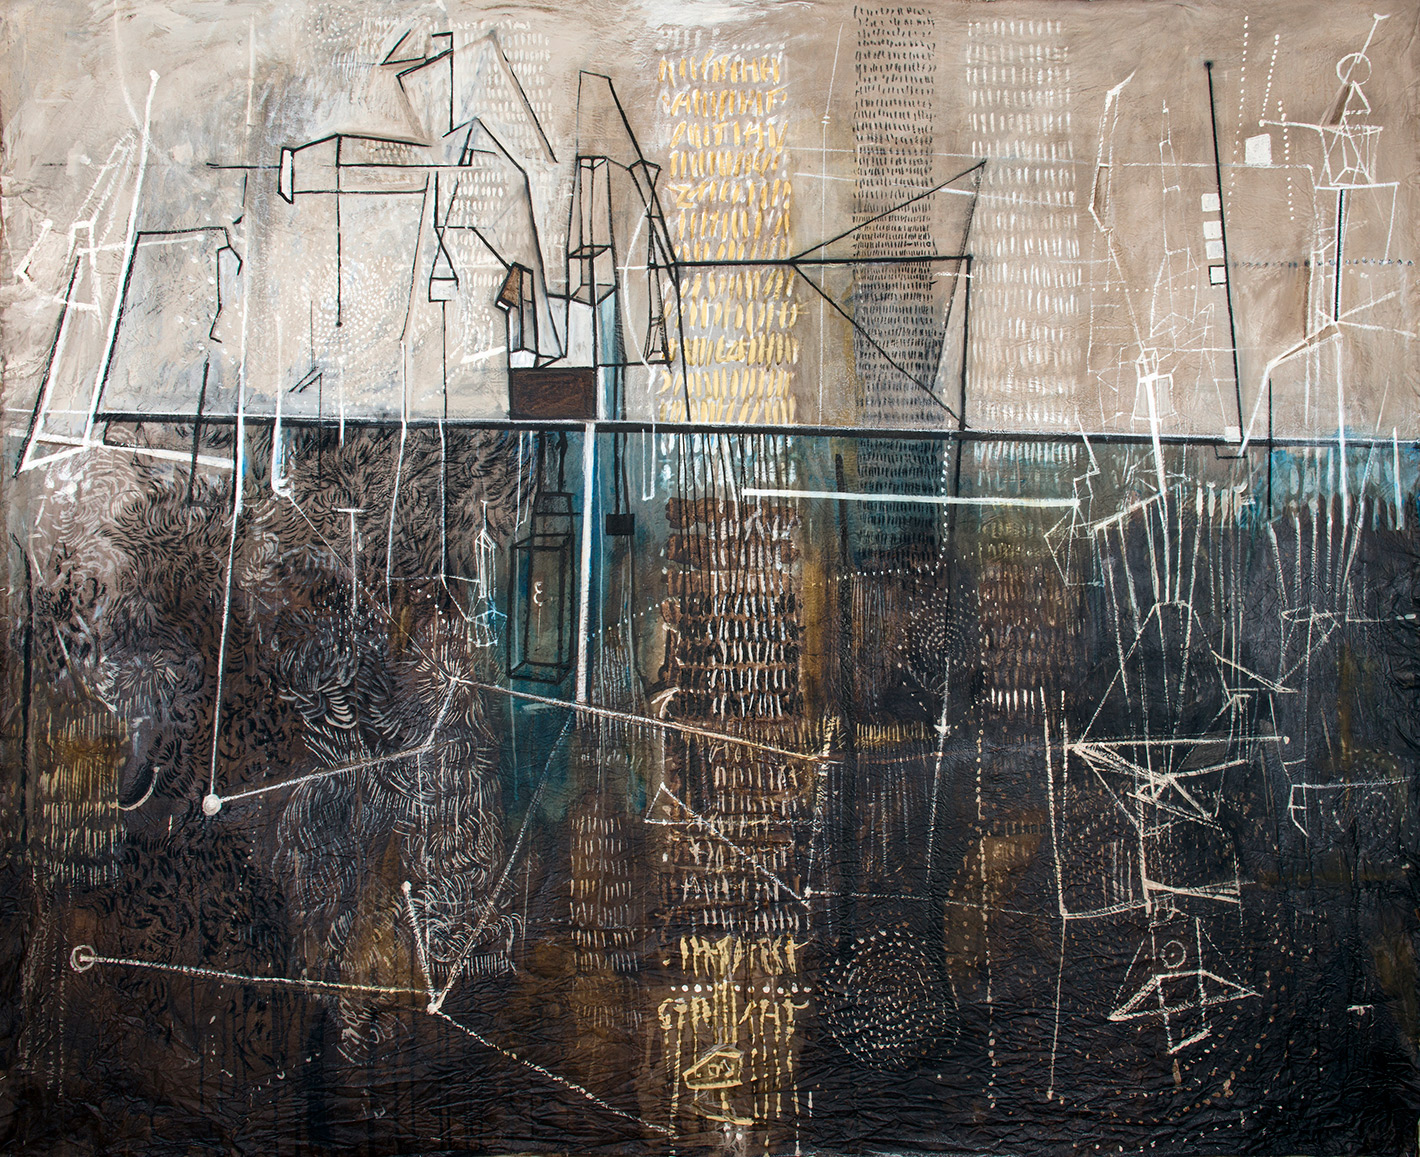 Mindscape I, ink and charcoal on canvas, 193 x 240 cm, 2020